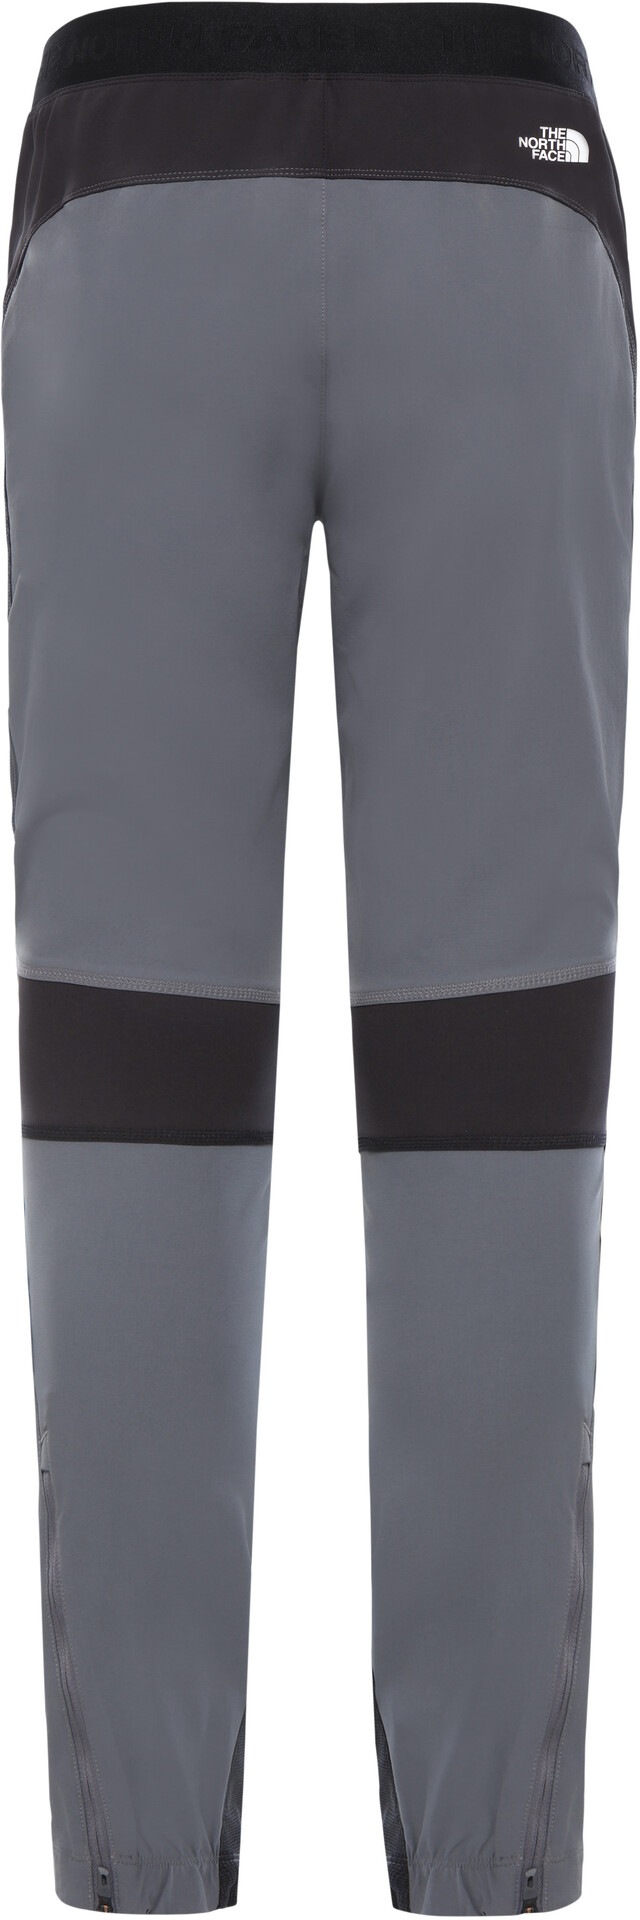 The North Face Heavyweight Logo Pantaloni Donna, tnf black/vanadis grey su Addnature prBd6